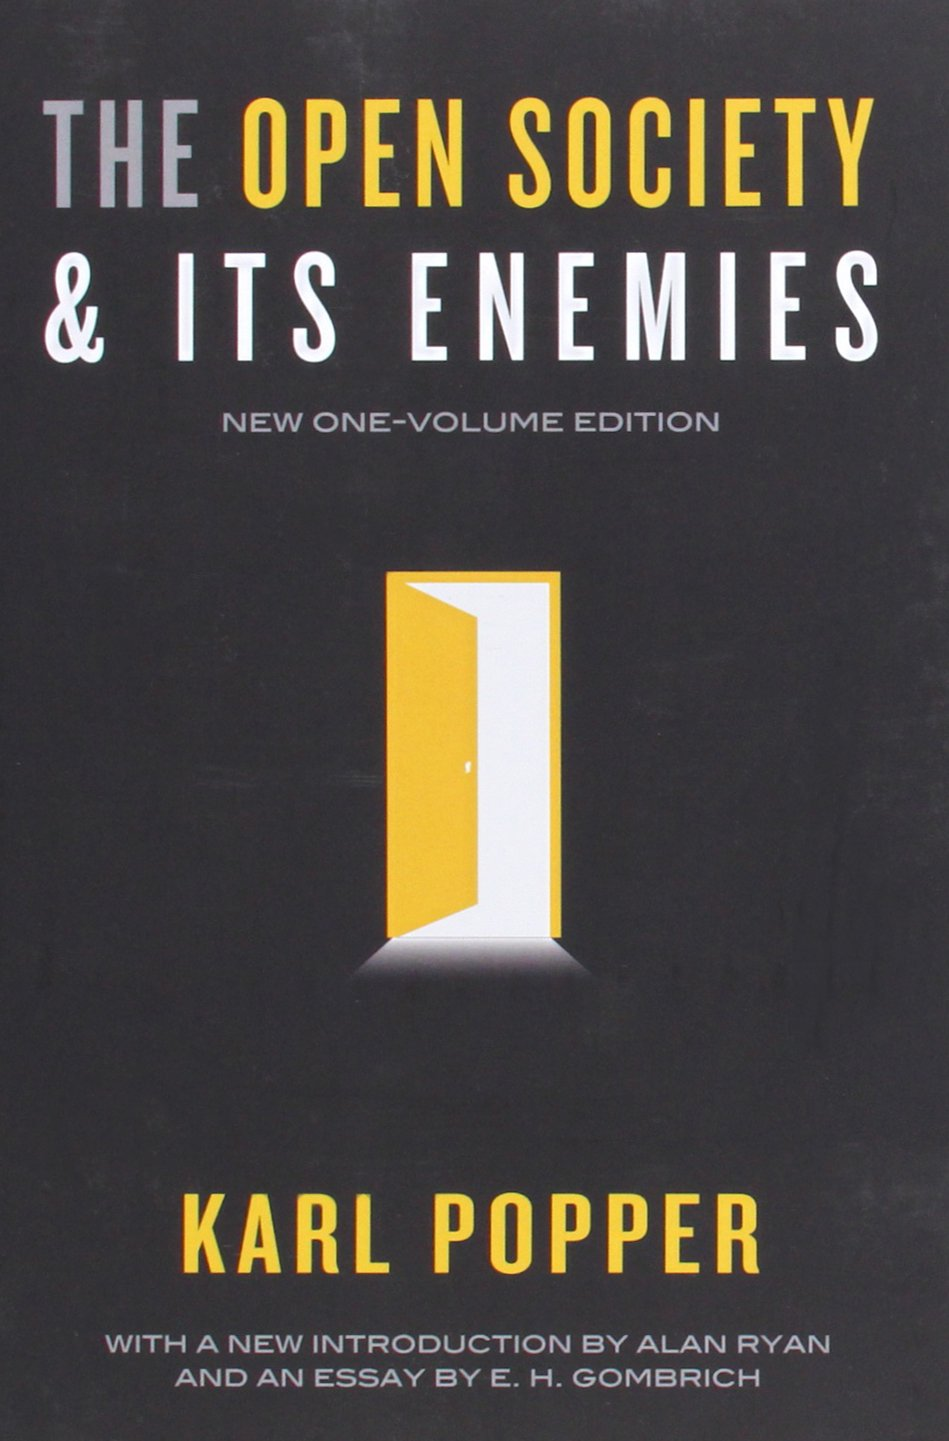 The Open Society And Its Enemies: Karl R Popper, Alan Ryan, E H  Gombrich: 9780691158136: Amazon: Books